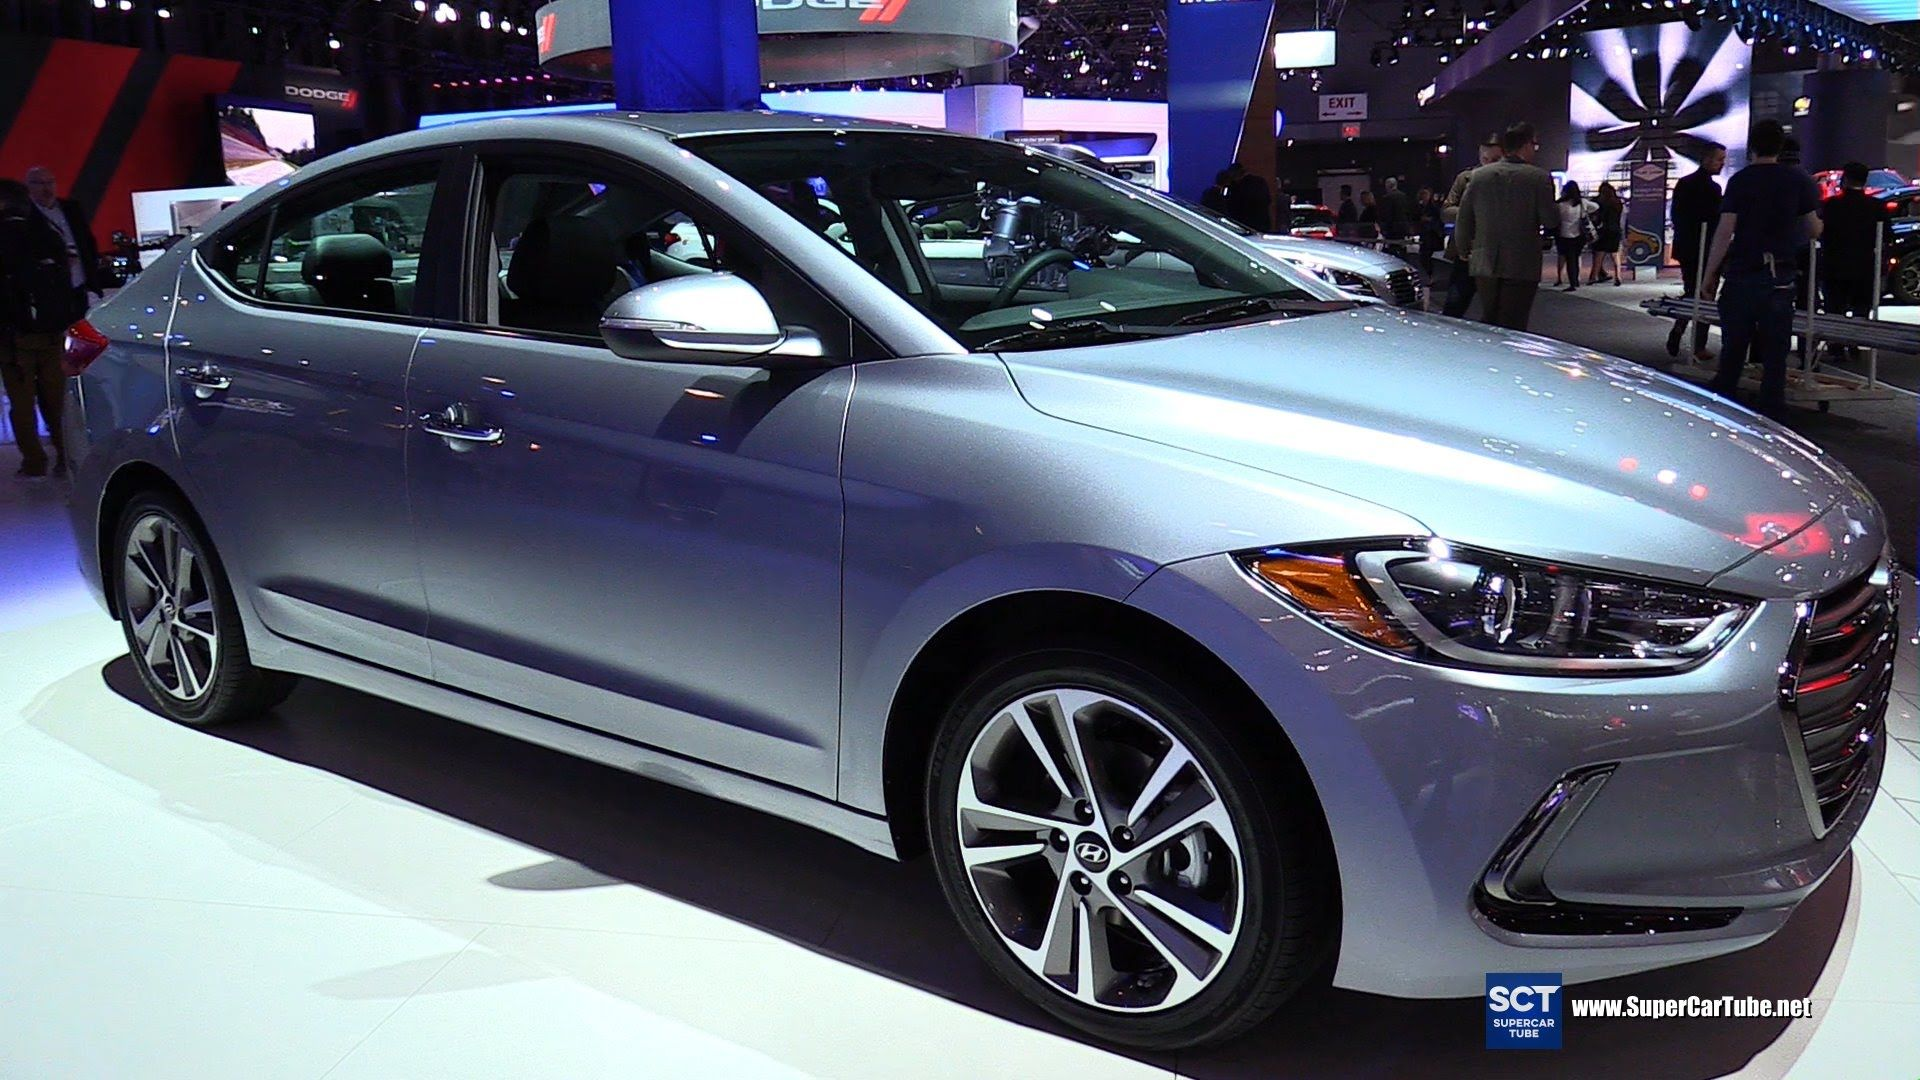 1 of my dream cars pinterest collegegyal car goalsssss pinterest hyundai sonata dream cars and cars